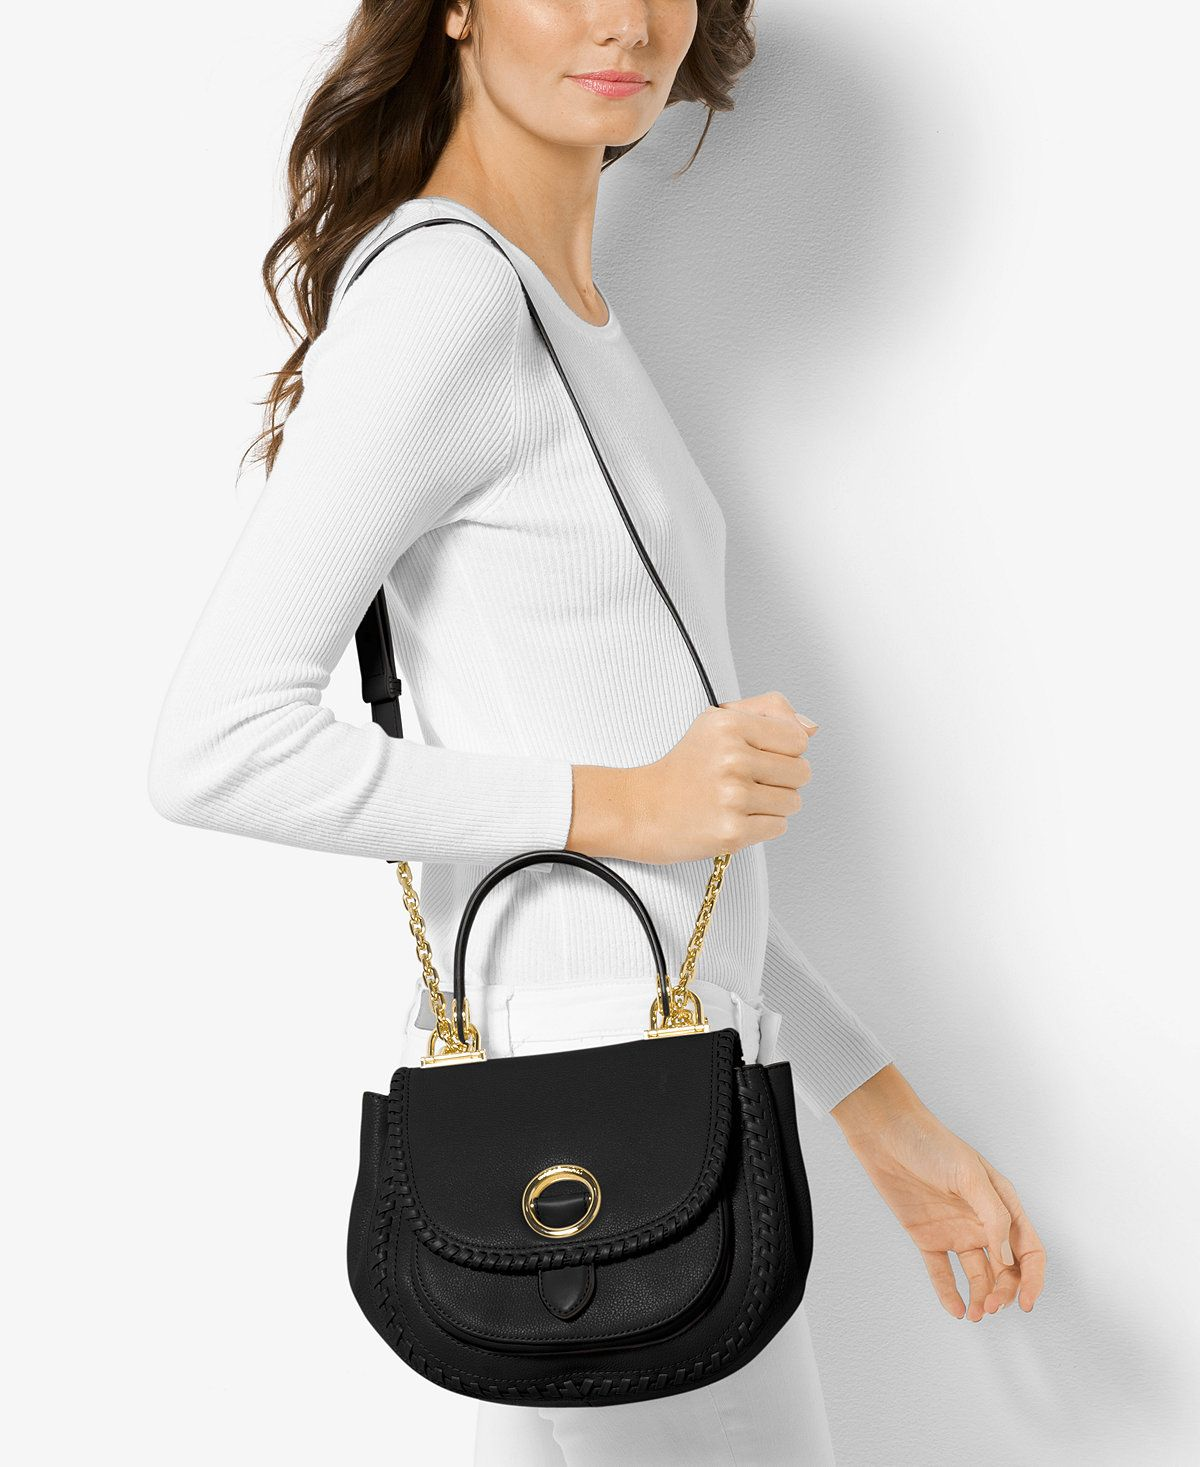 9d384c97dfa5 MICHAEL Michael Kors Isadore Medium Top Handle Messenger - Handbags &  Accessories - Macy's